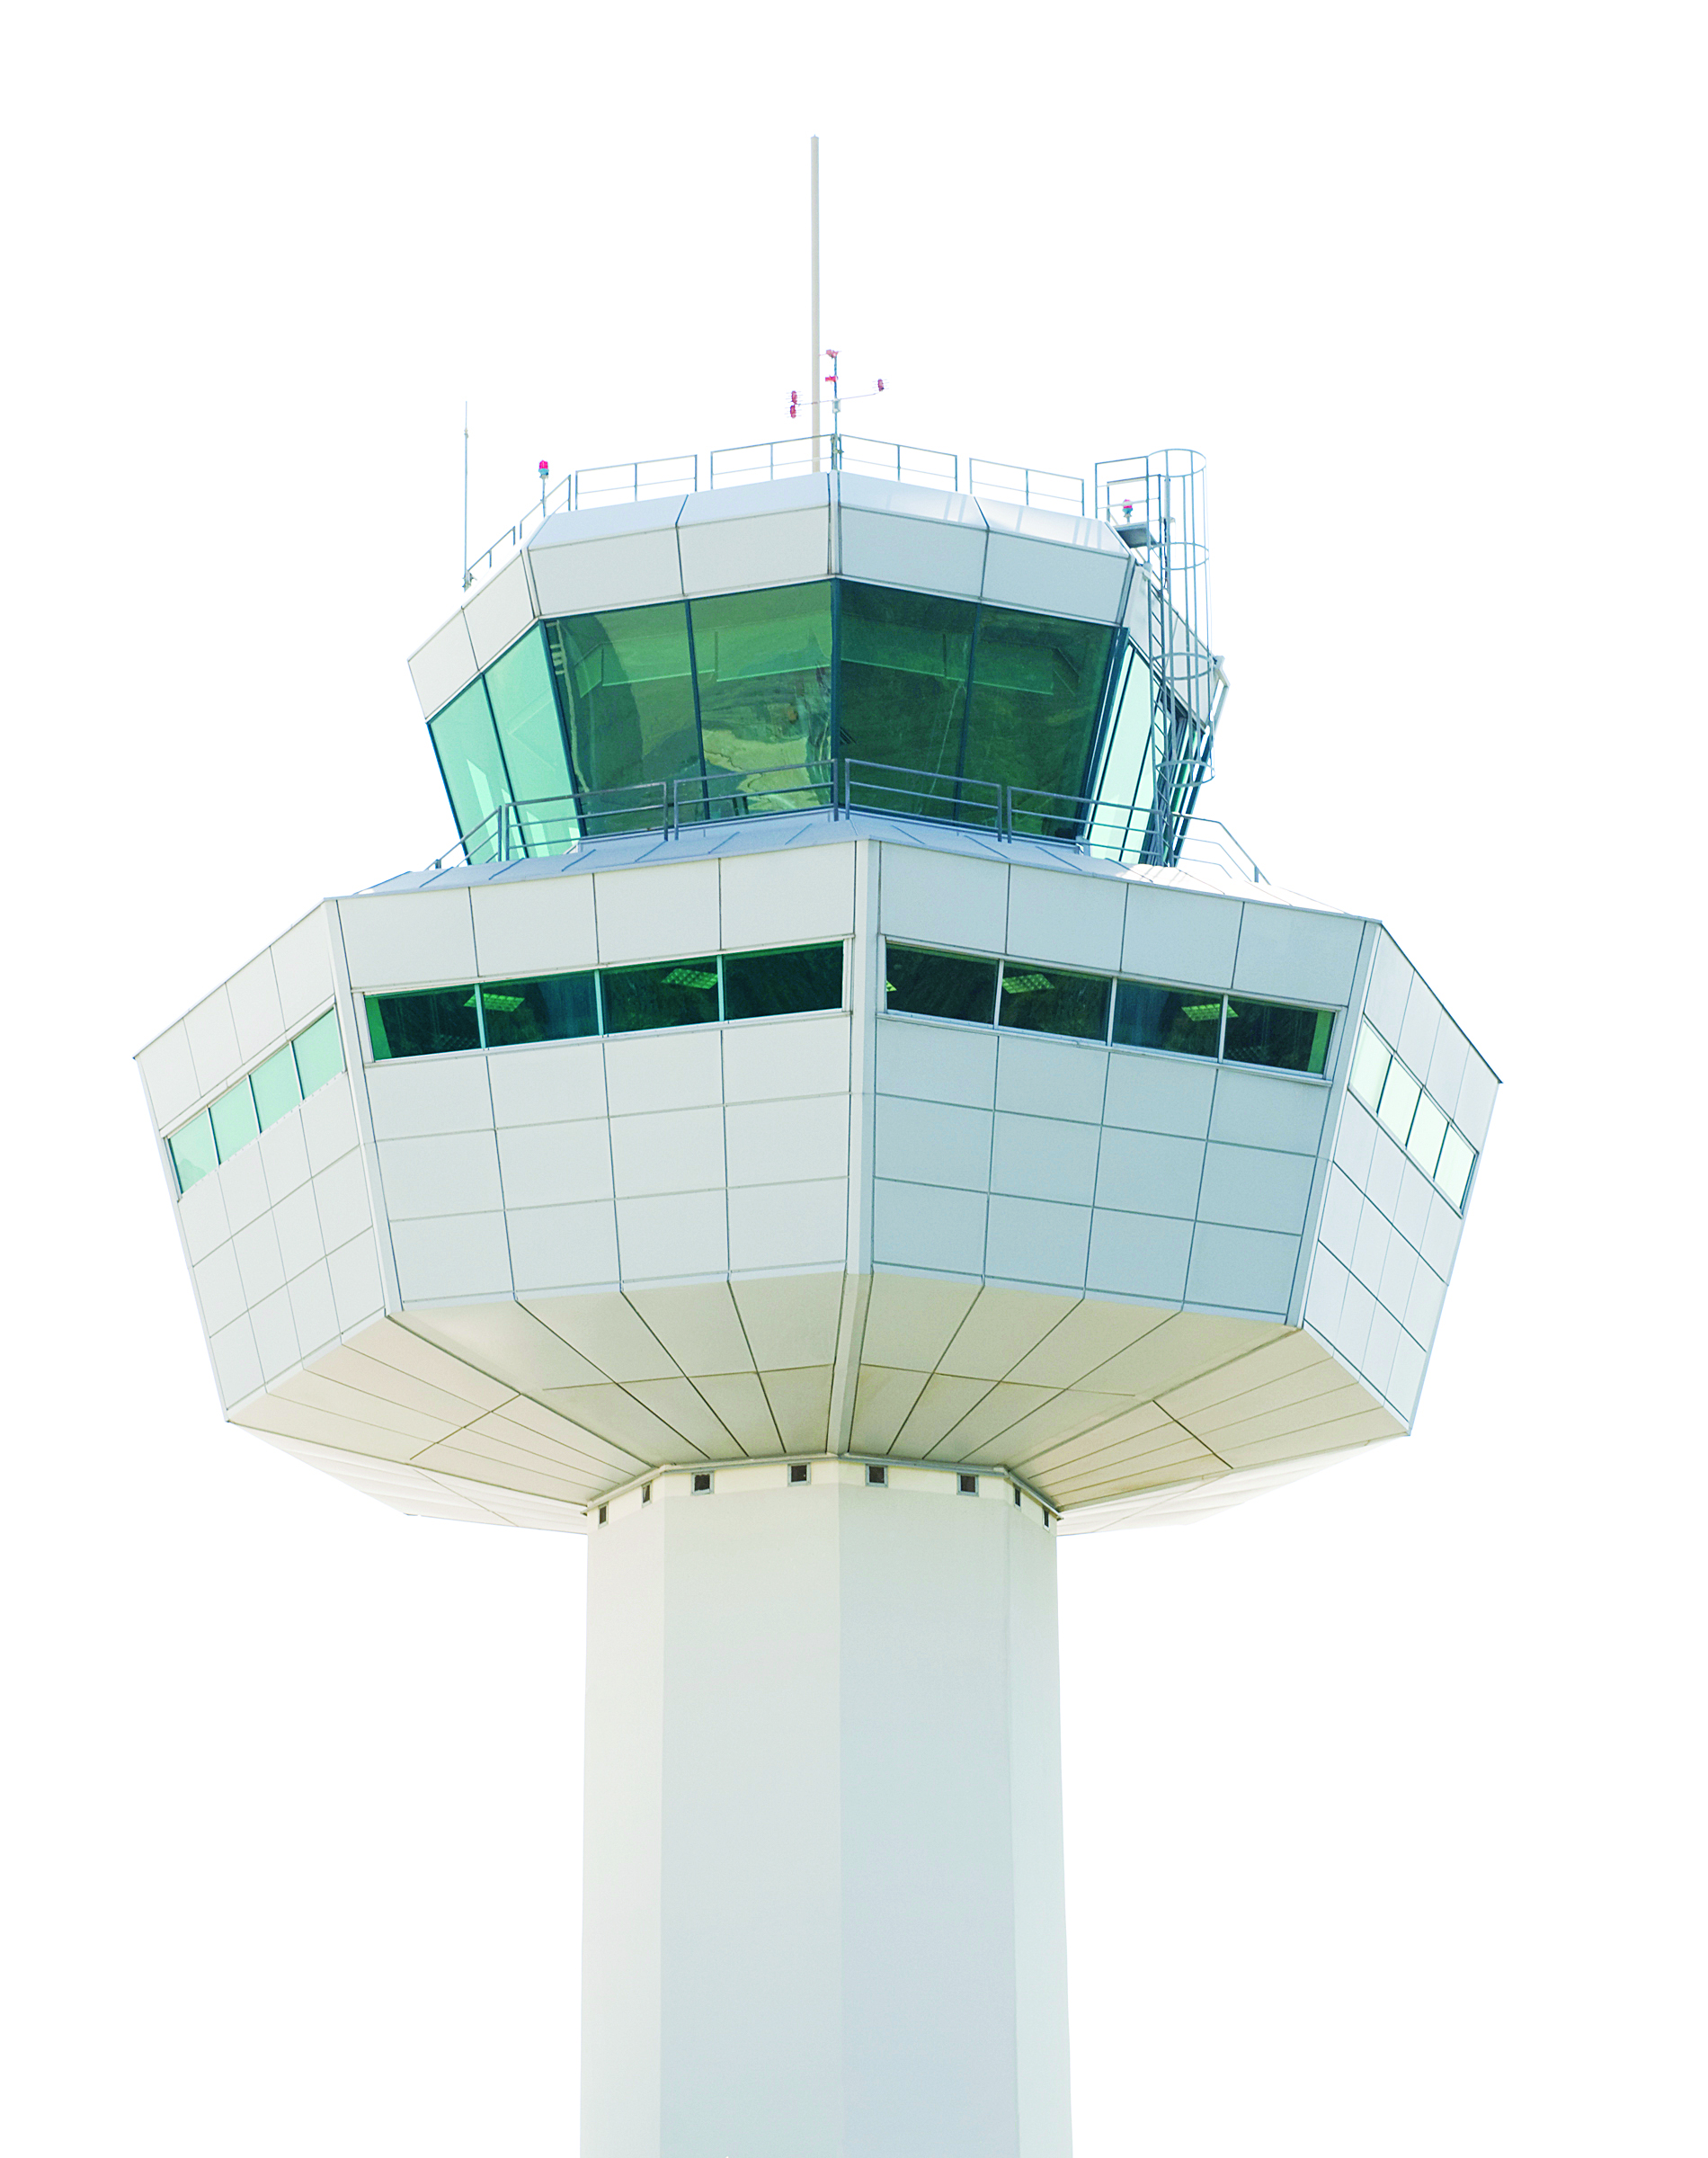 What to Do If You Lose ATC Contact on an IFR Flight | Flying